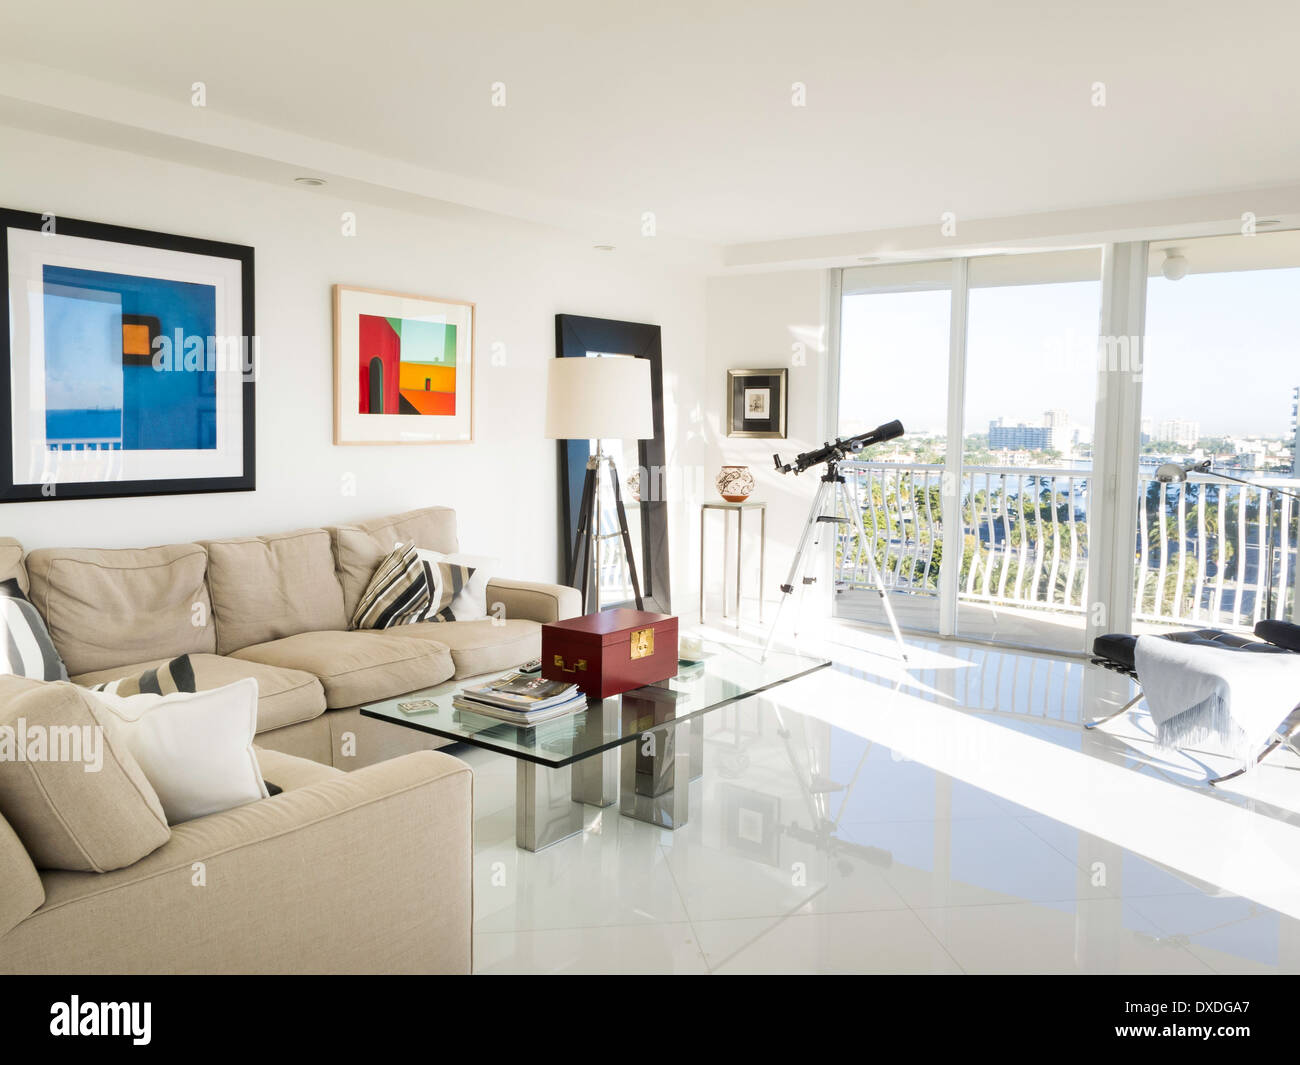 Showcase Luxury Condo Living Room And Balcony Fort Lauderdale Fl Stock Photo Royalty Free